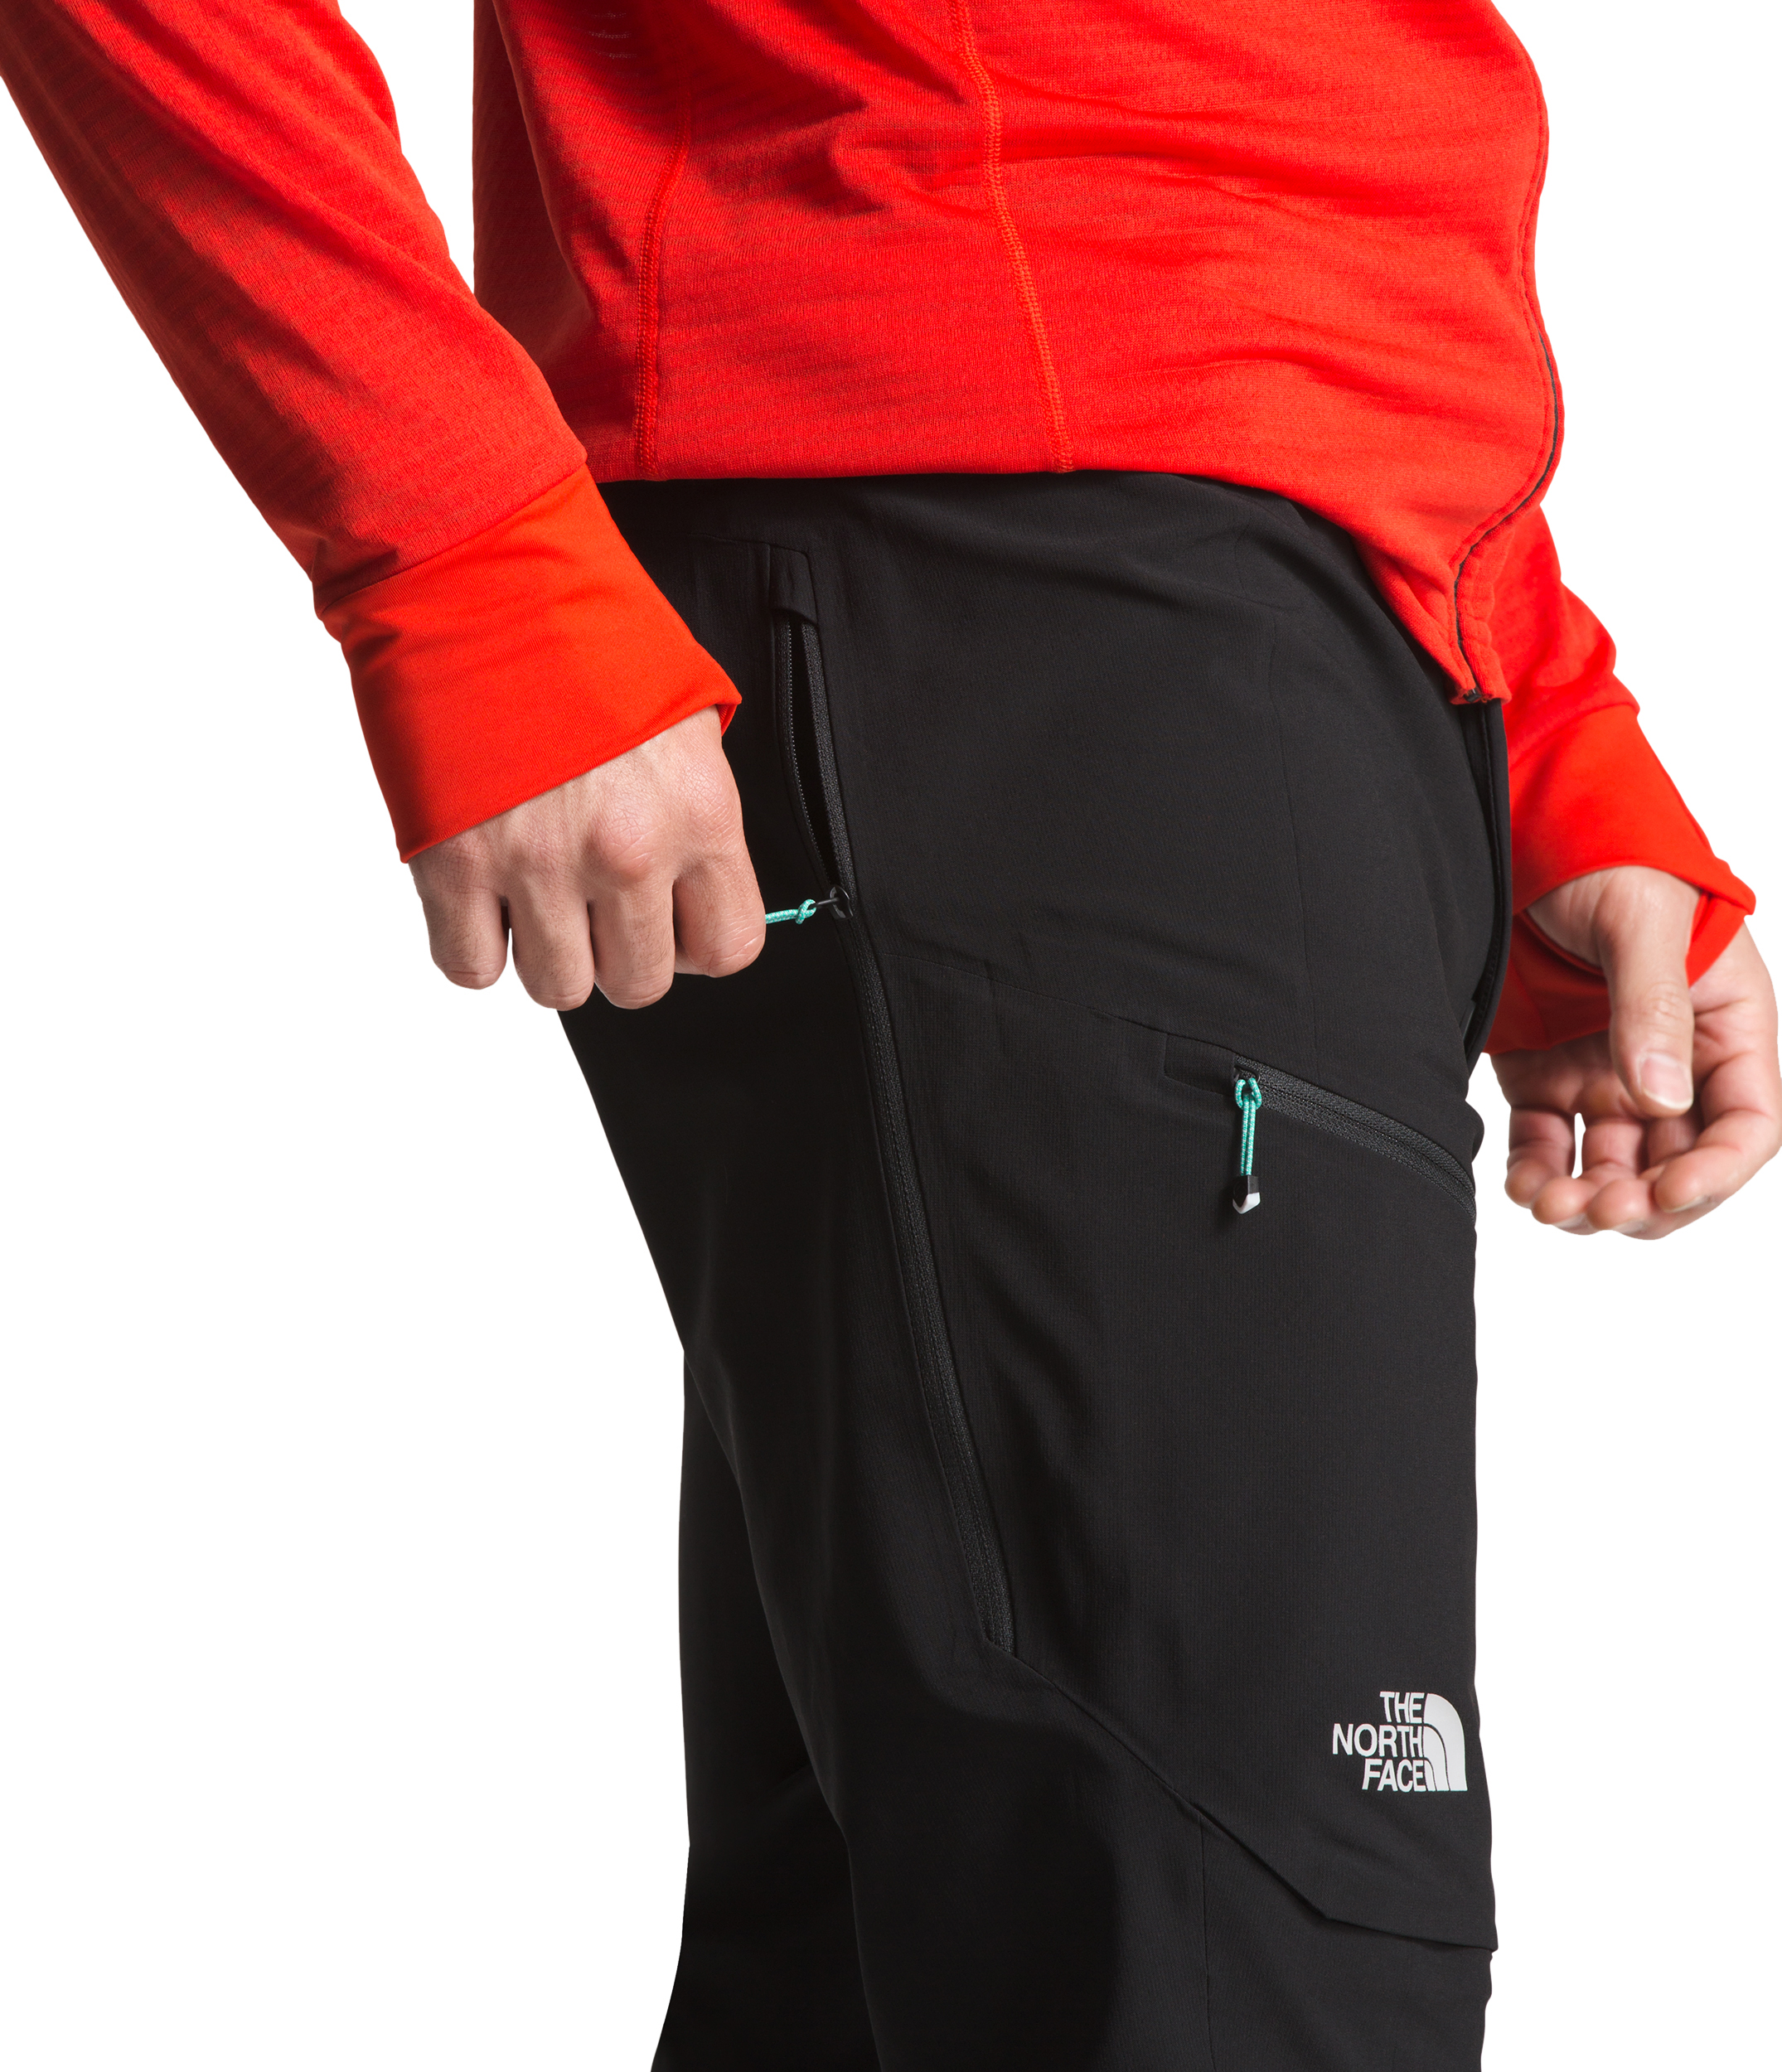 44be26496 The North Face Summit L4 Proprius Soft Shell Pants - Men's | MEC